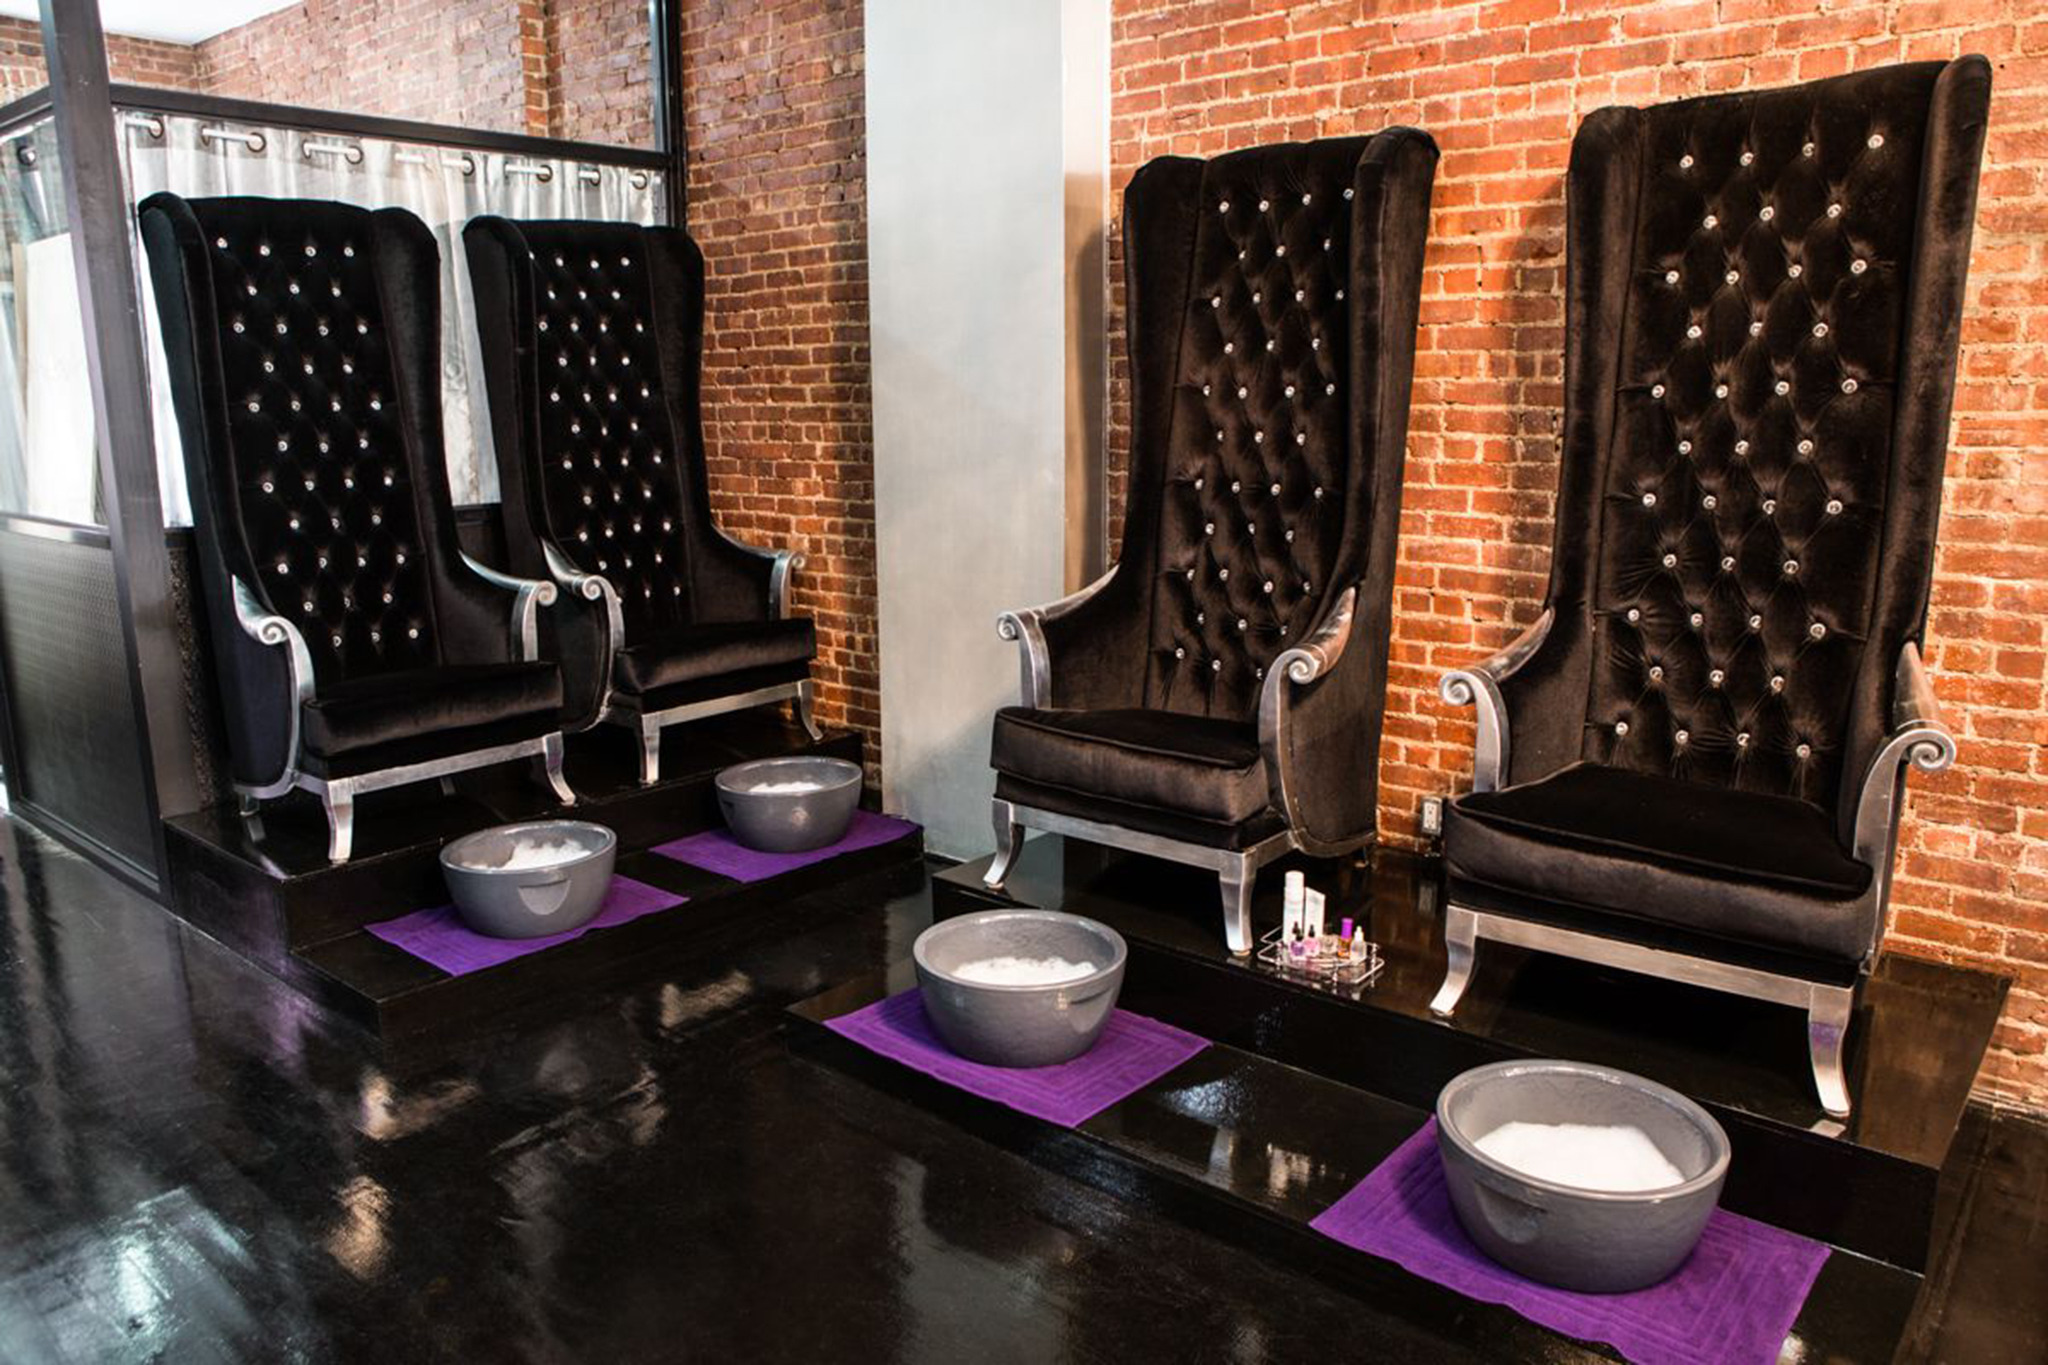 Salon Chair Covers Bed Of Nails Health And Beauty In Harlem New York